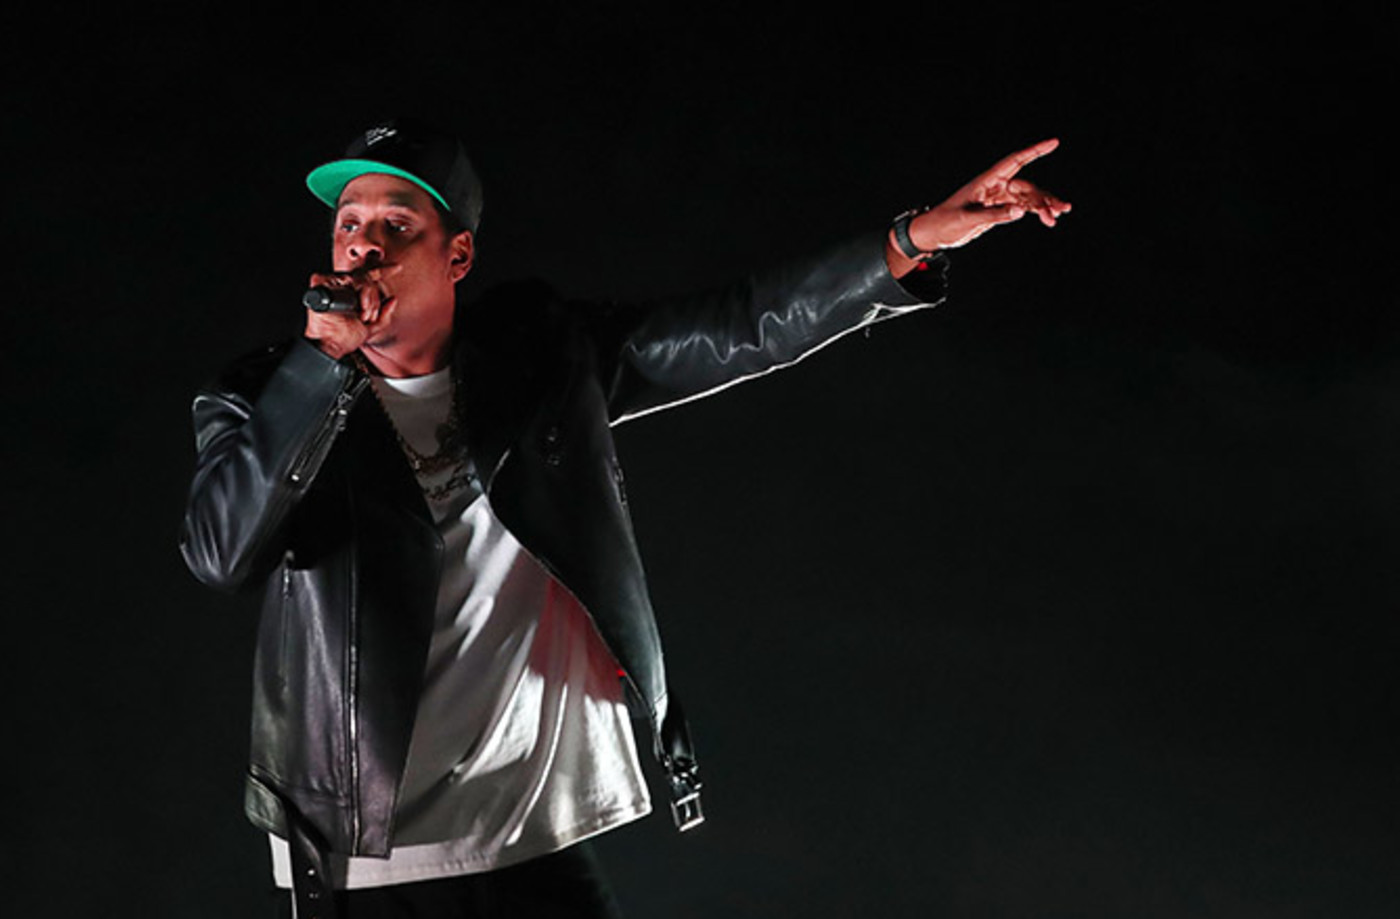 This a photo of Jay Z.